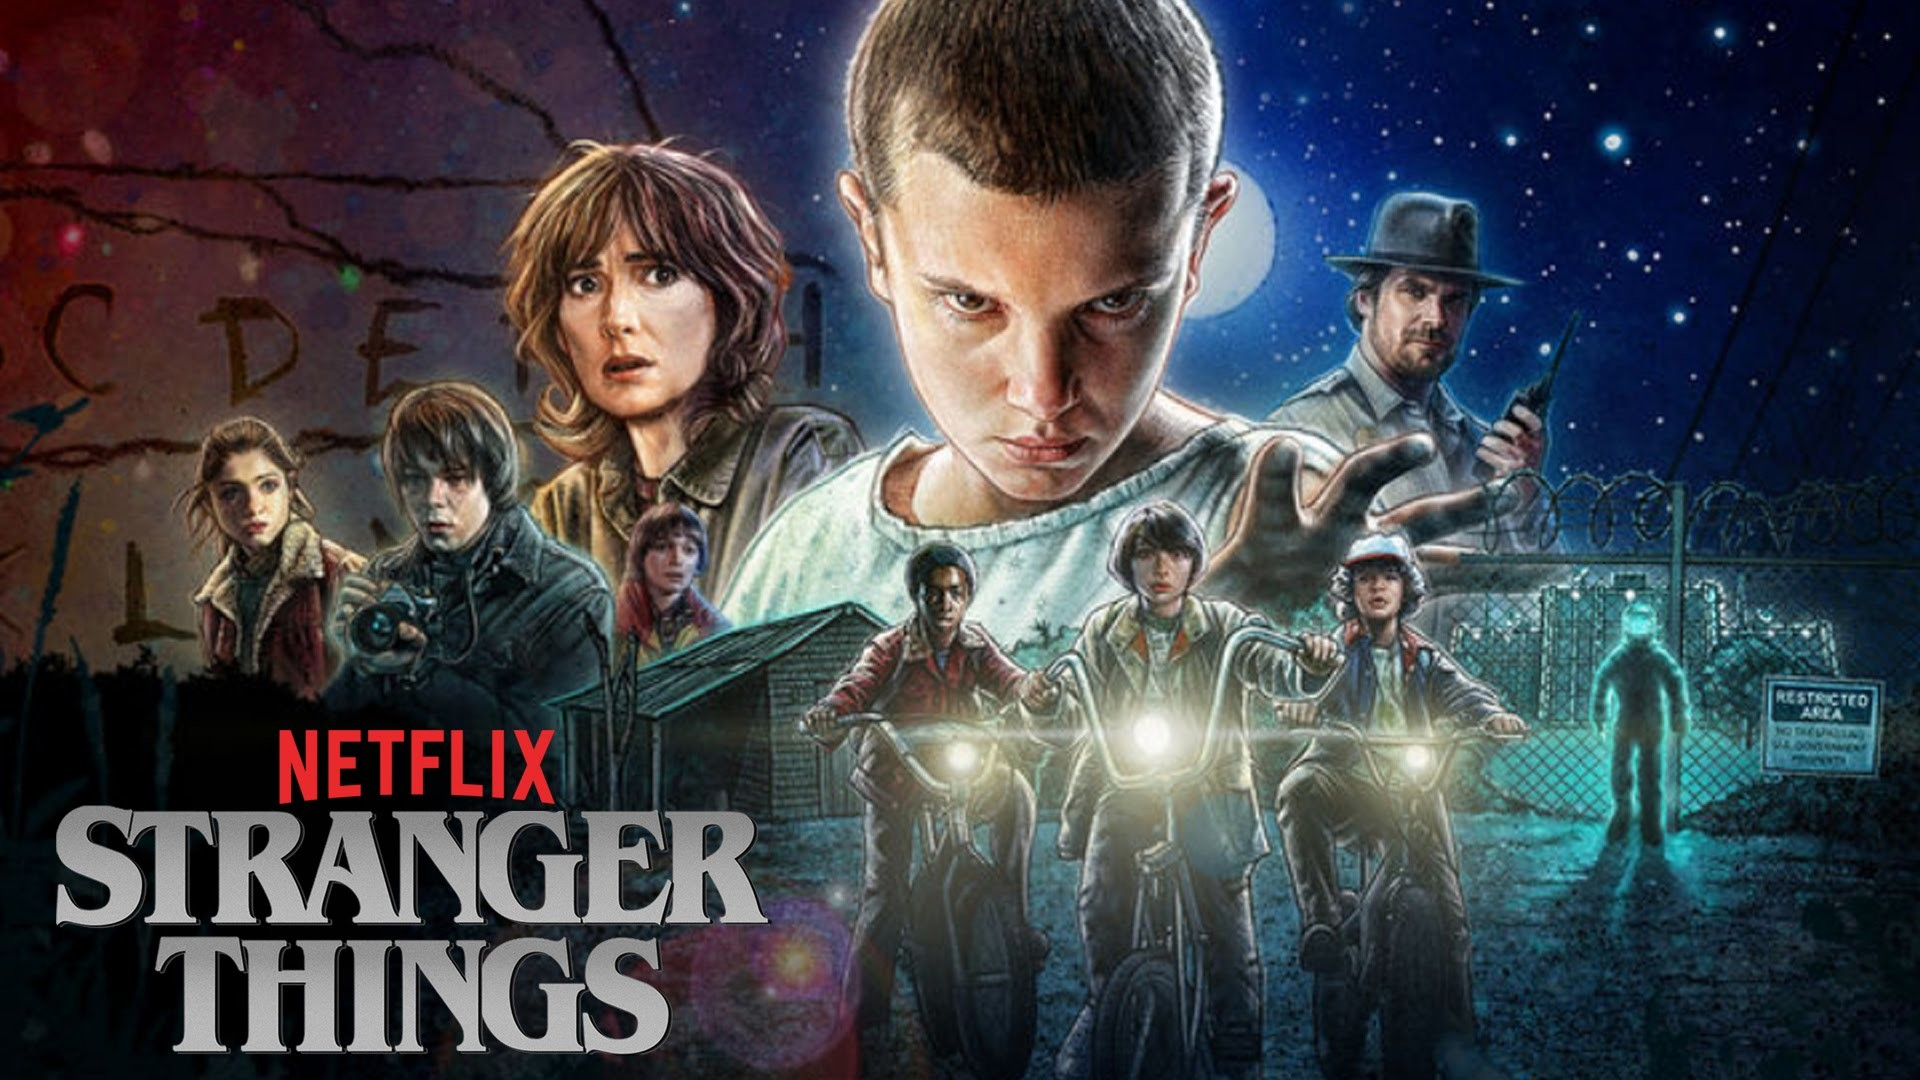 Stranger Things Wallpapers Wallpapertag